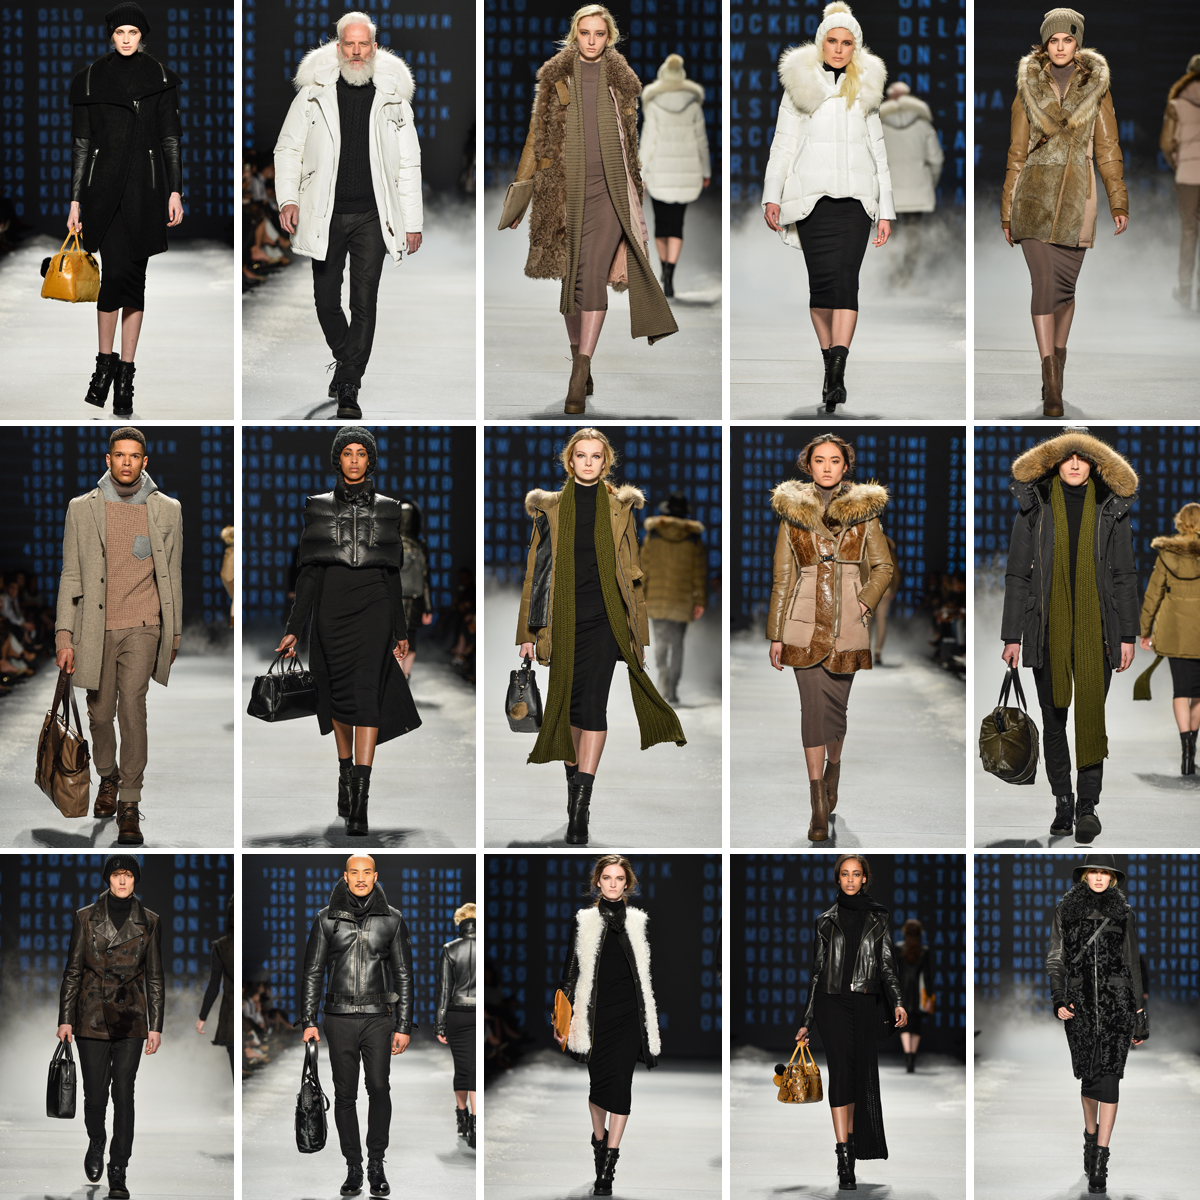 rudsak fall winter 2015 world mastercard fashion week toronto fashion week 01